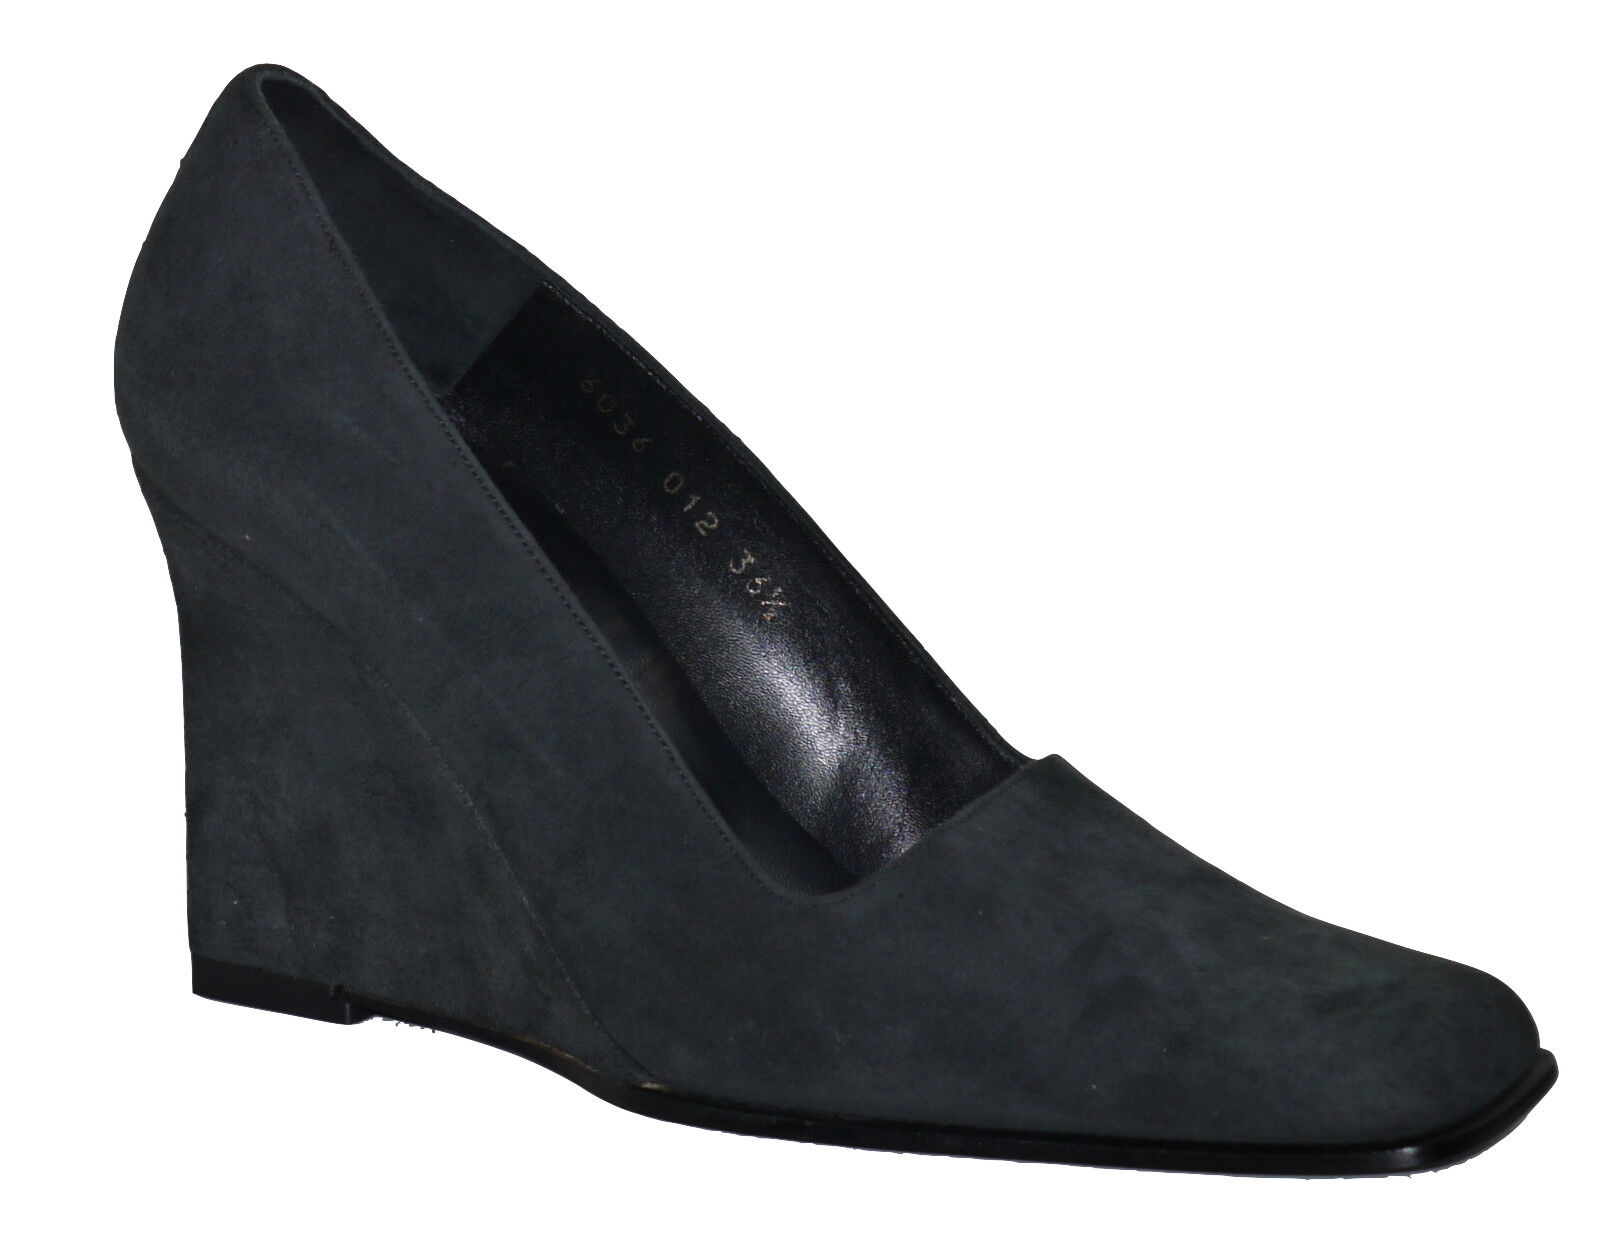 Pura Lopez Grau Suede Wedge Schuhes Slip On's NIB SP